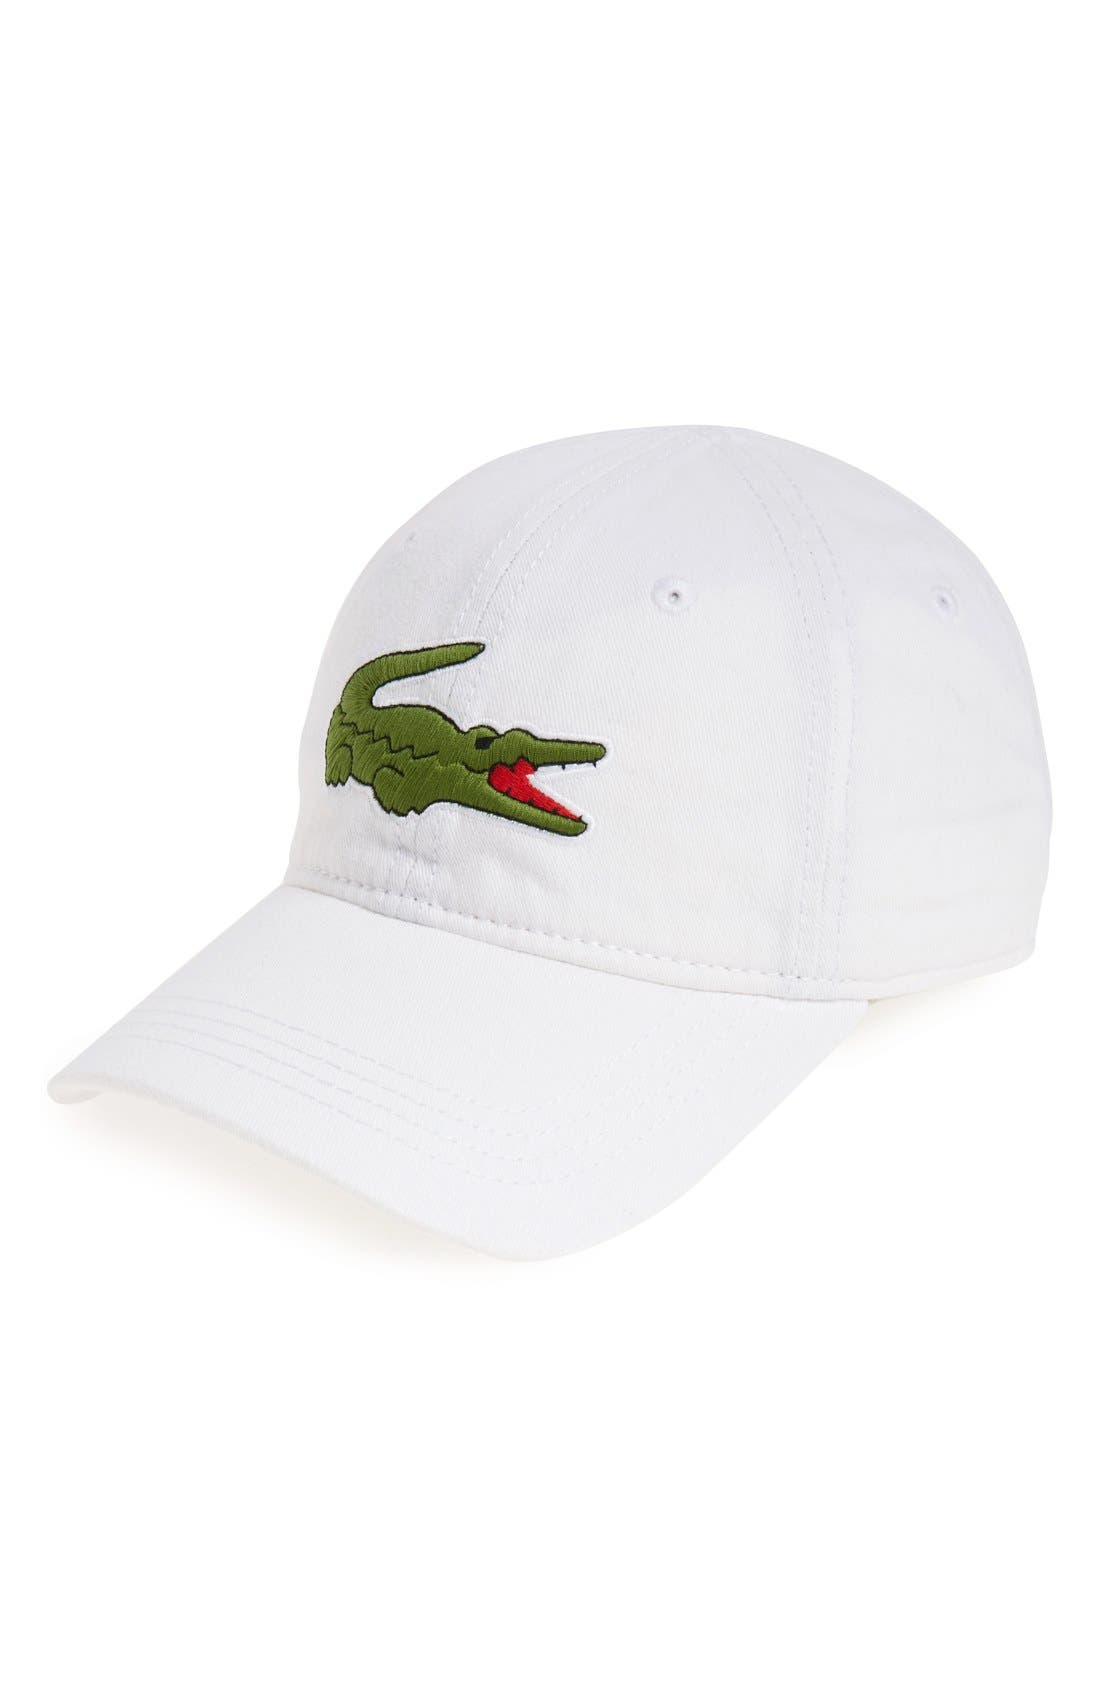 Lacoste 'Big Croc' Logo Embroidered Cap